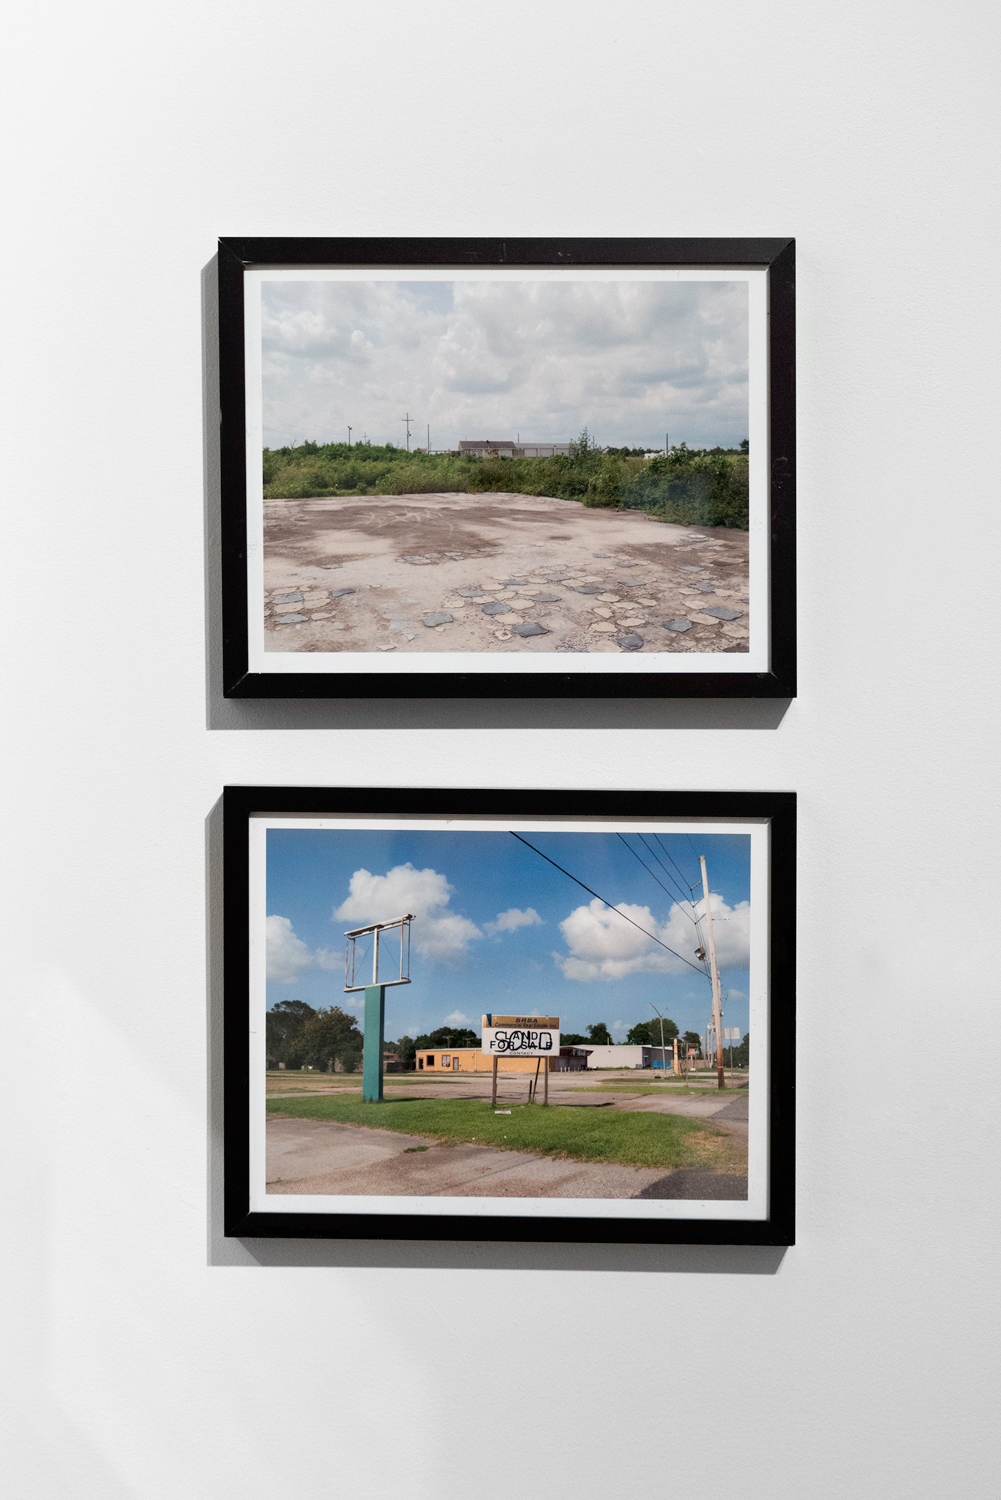 Ginny Hanusik. From top: Last Stop Mart, Saint Bernard Parish, LA, 2014; Bayou Road, Poydras, LA, 2015. Digital prints.